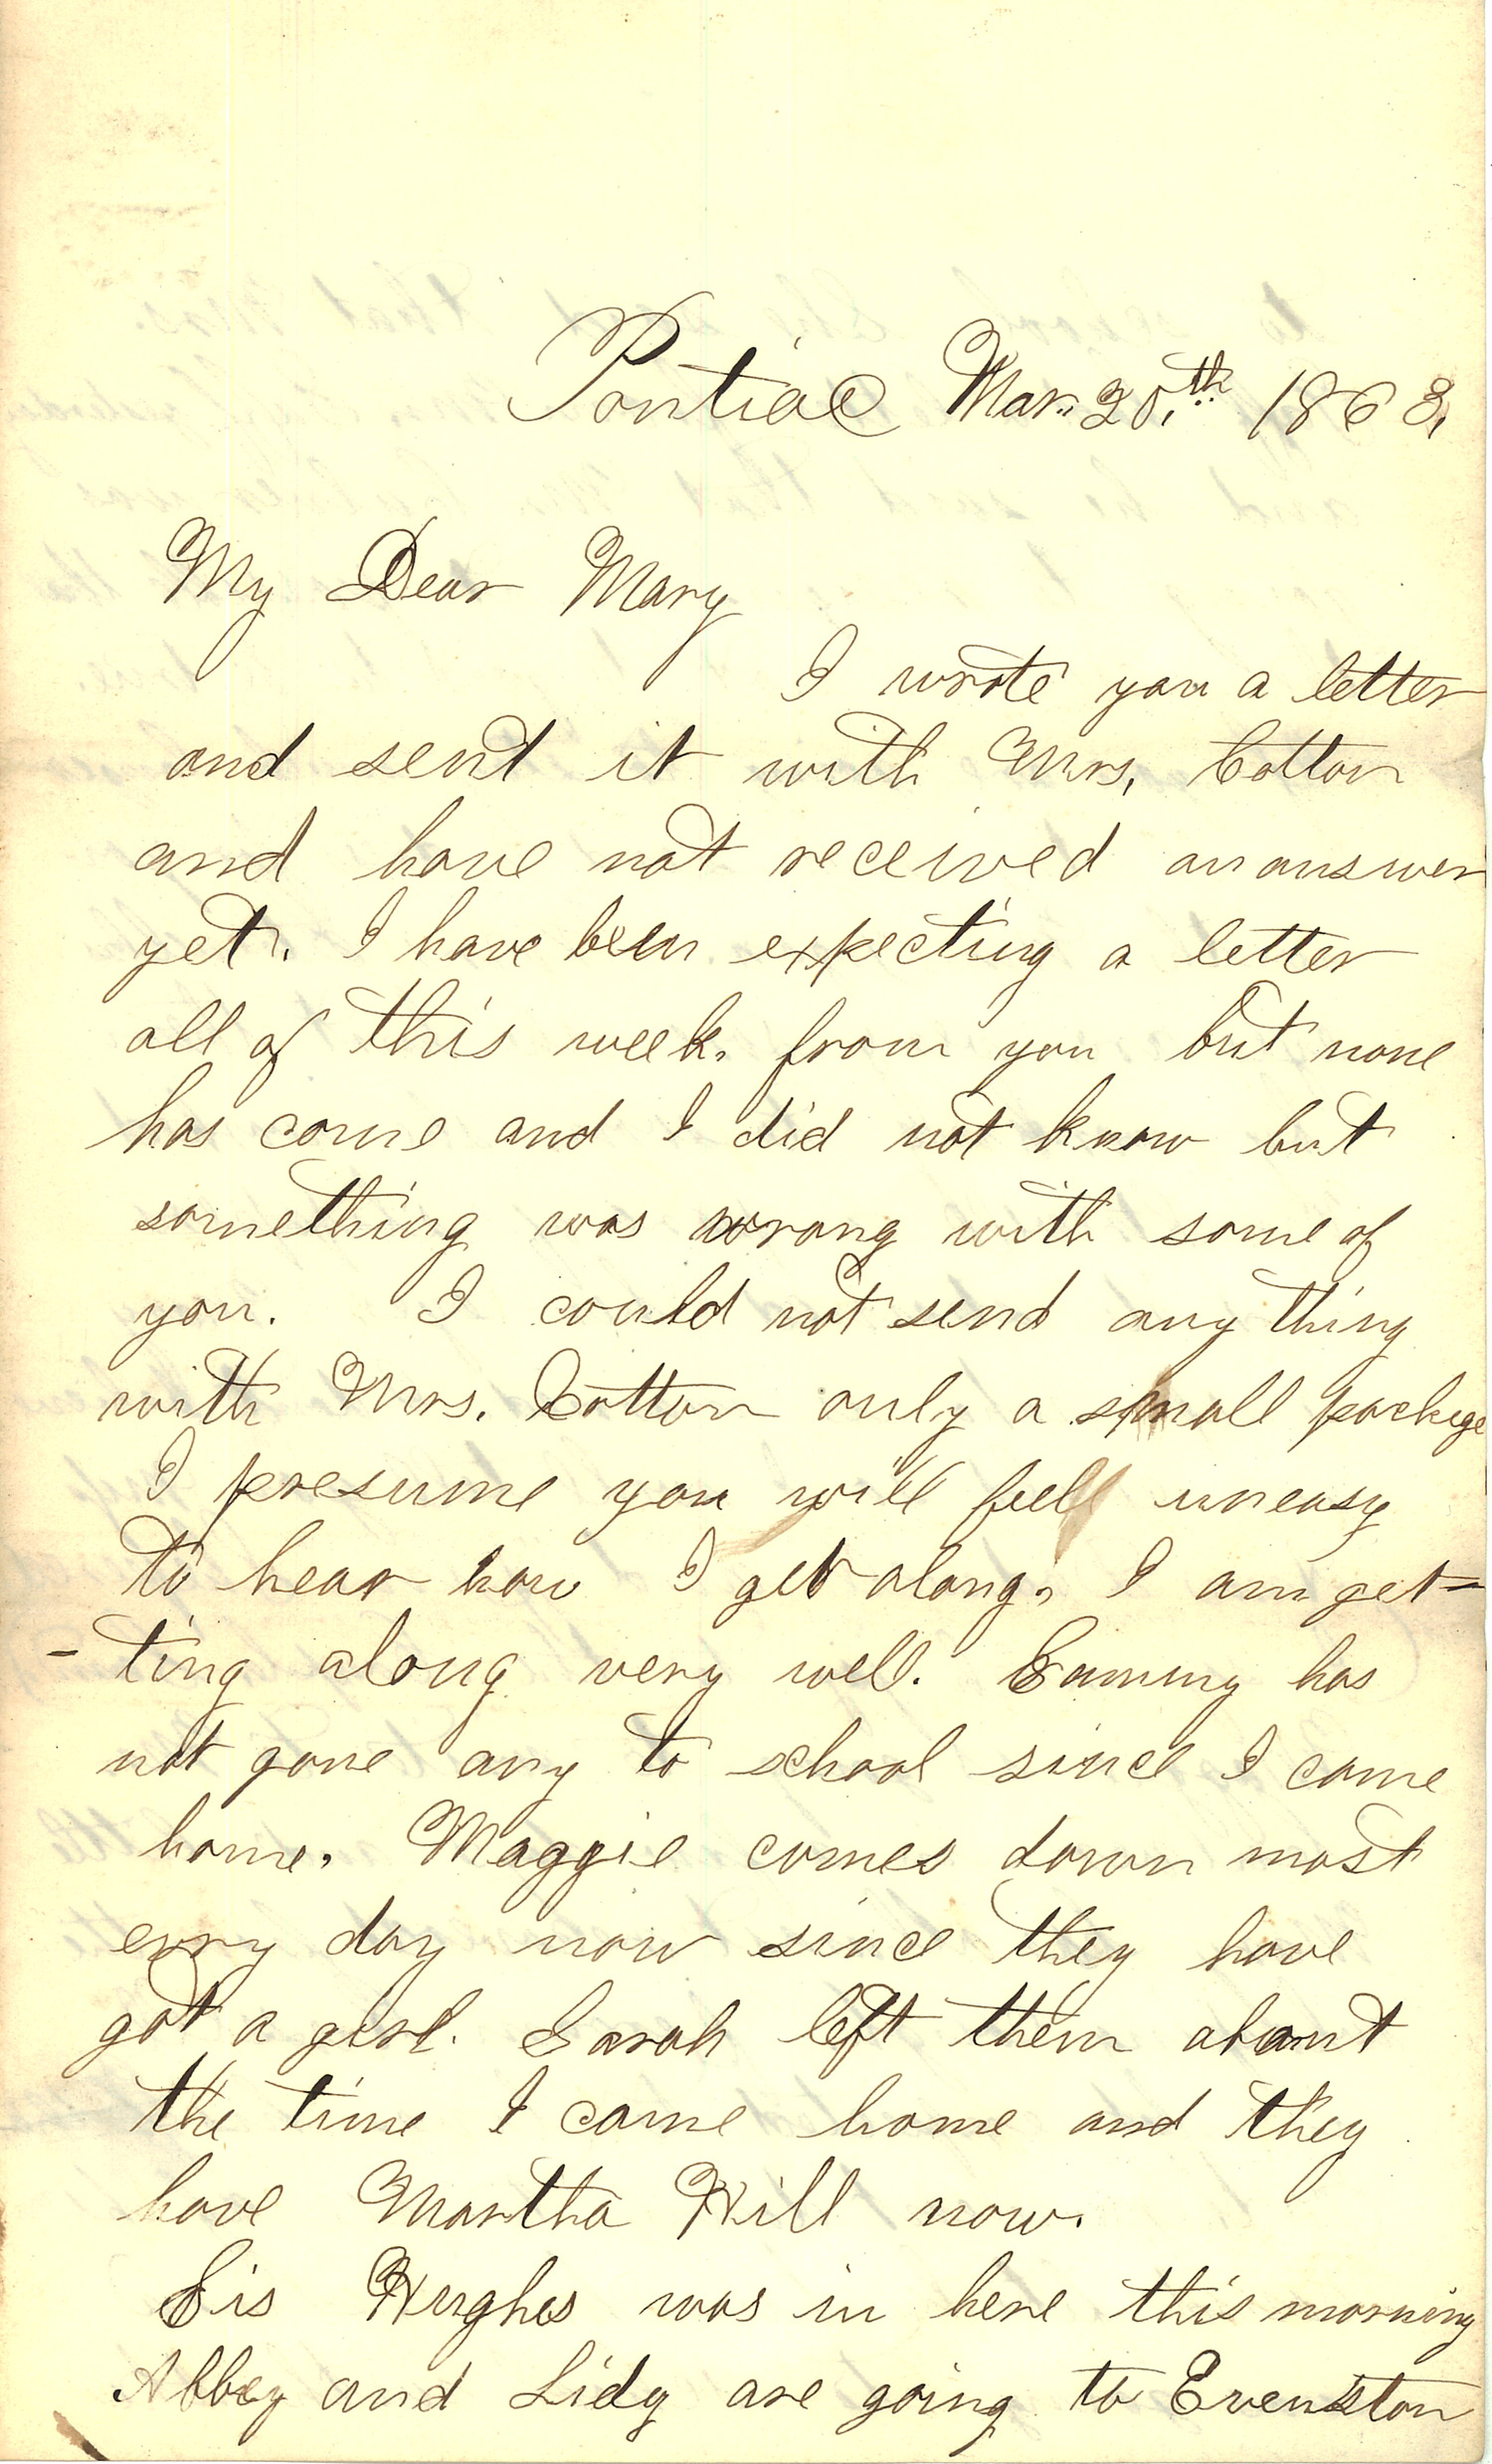 Joseph Culver Letter, March 20, 1863, Page 1